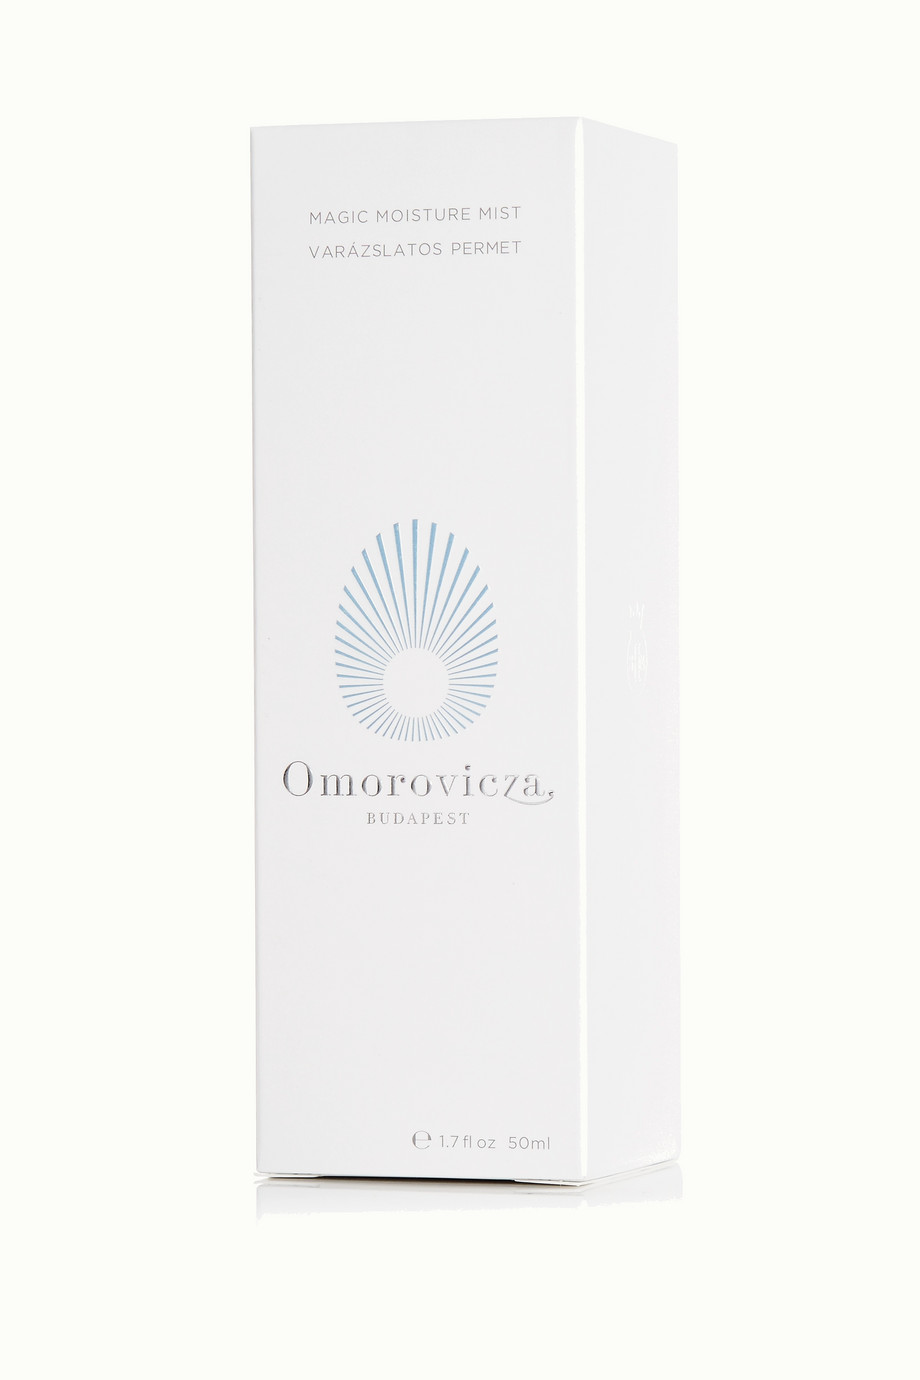 Omorovicza Magic Moisture Mist, 50ml